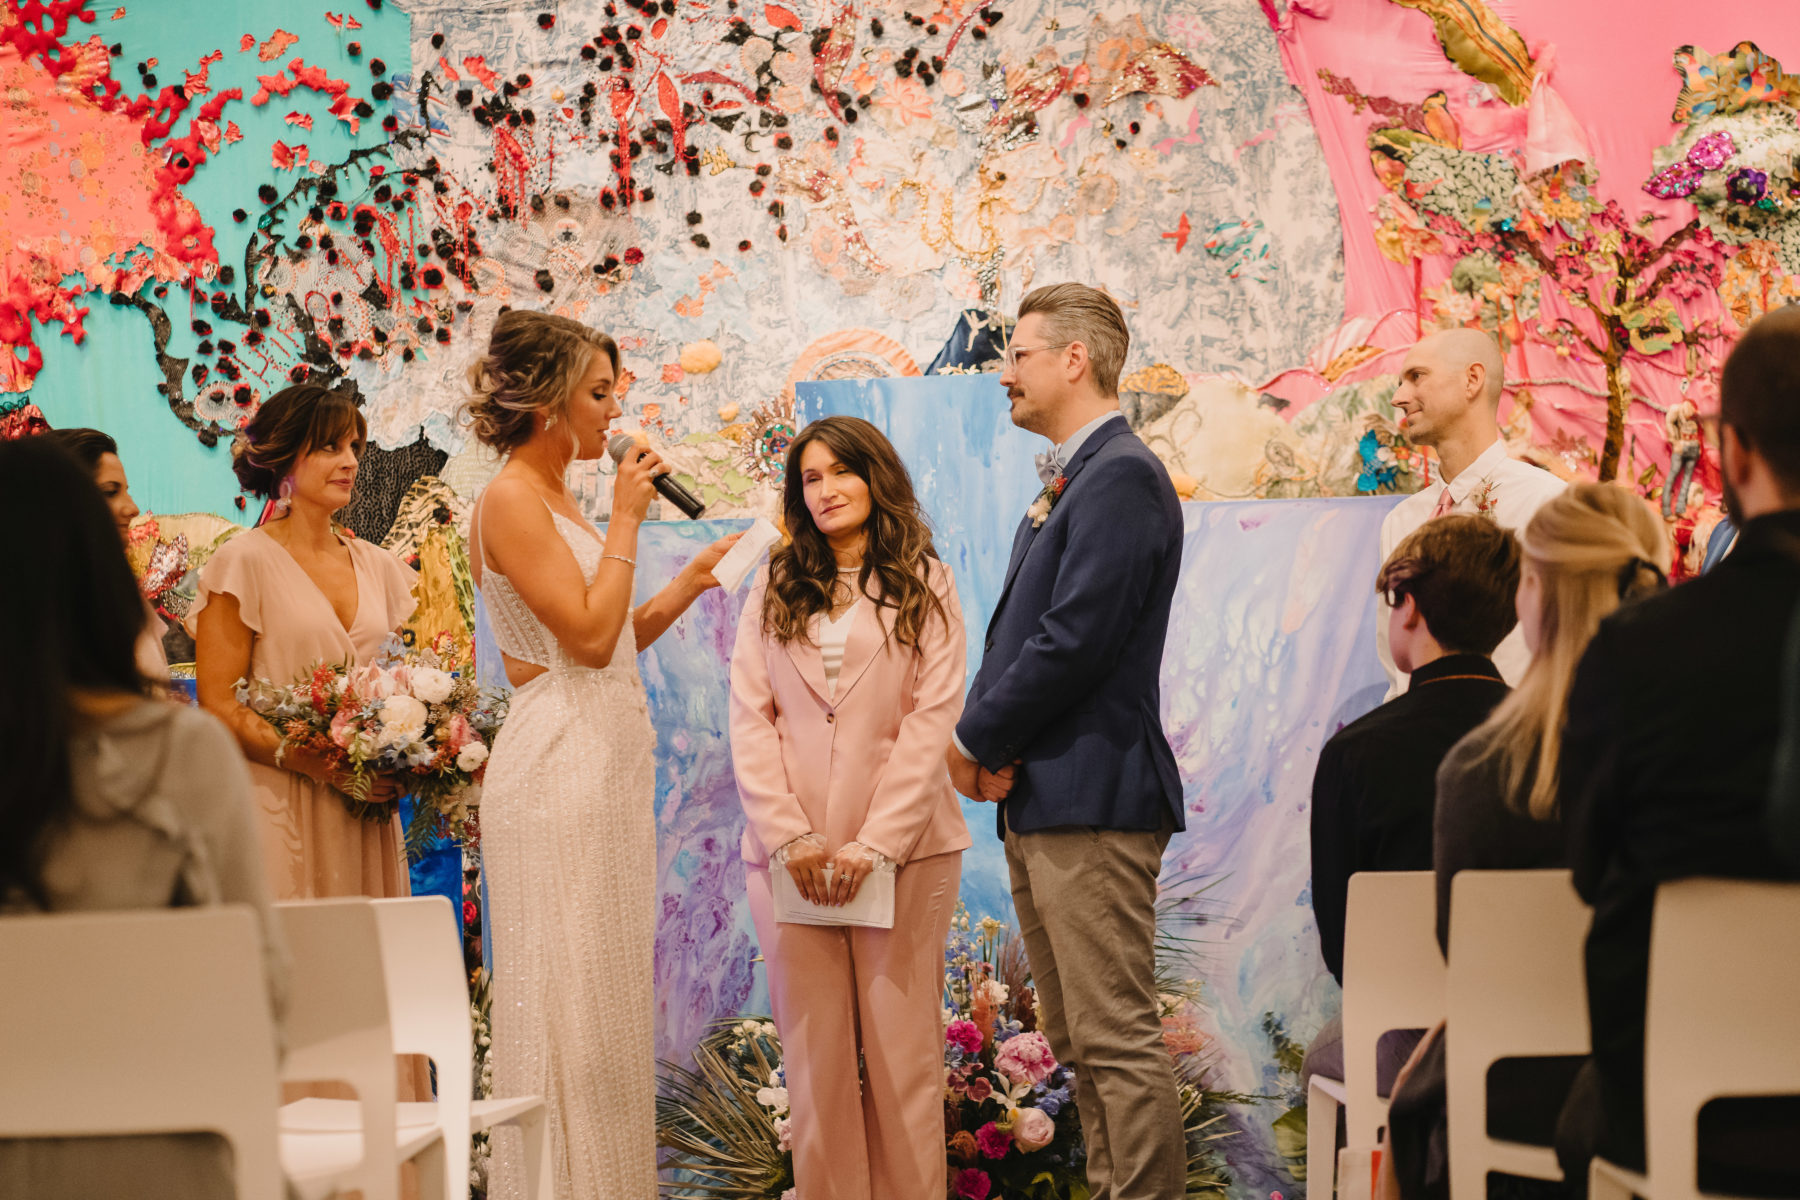 The Nashville Big Fake Wedding captured by Charlene Mann Photography